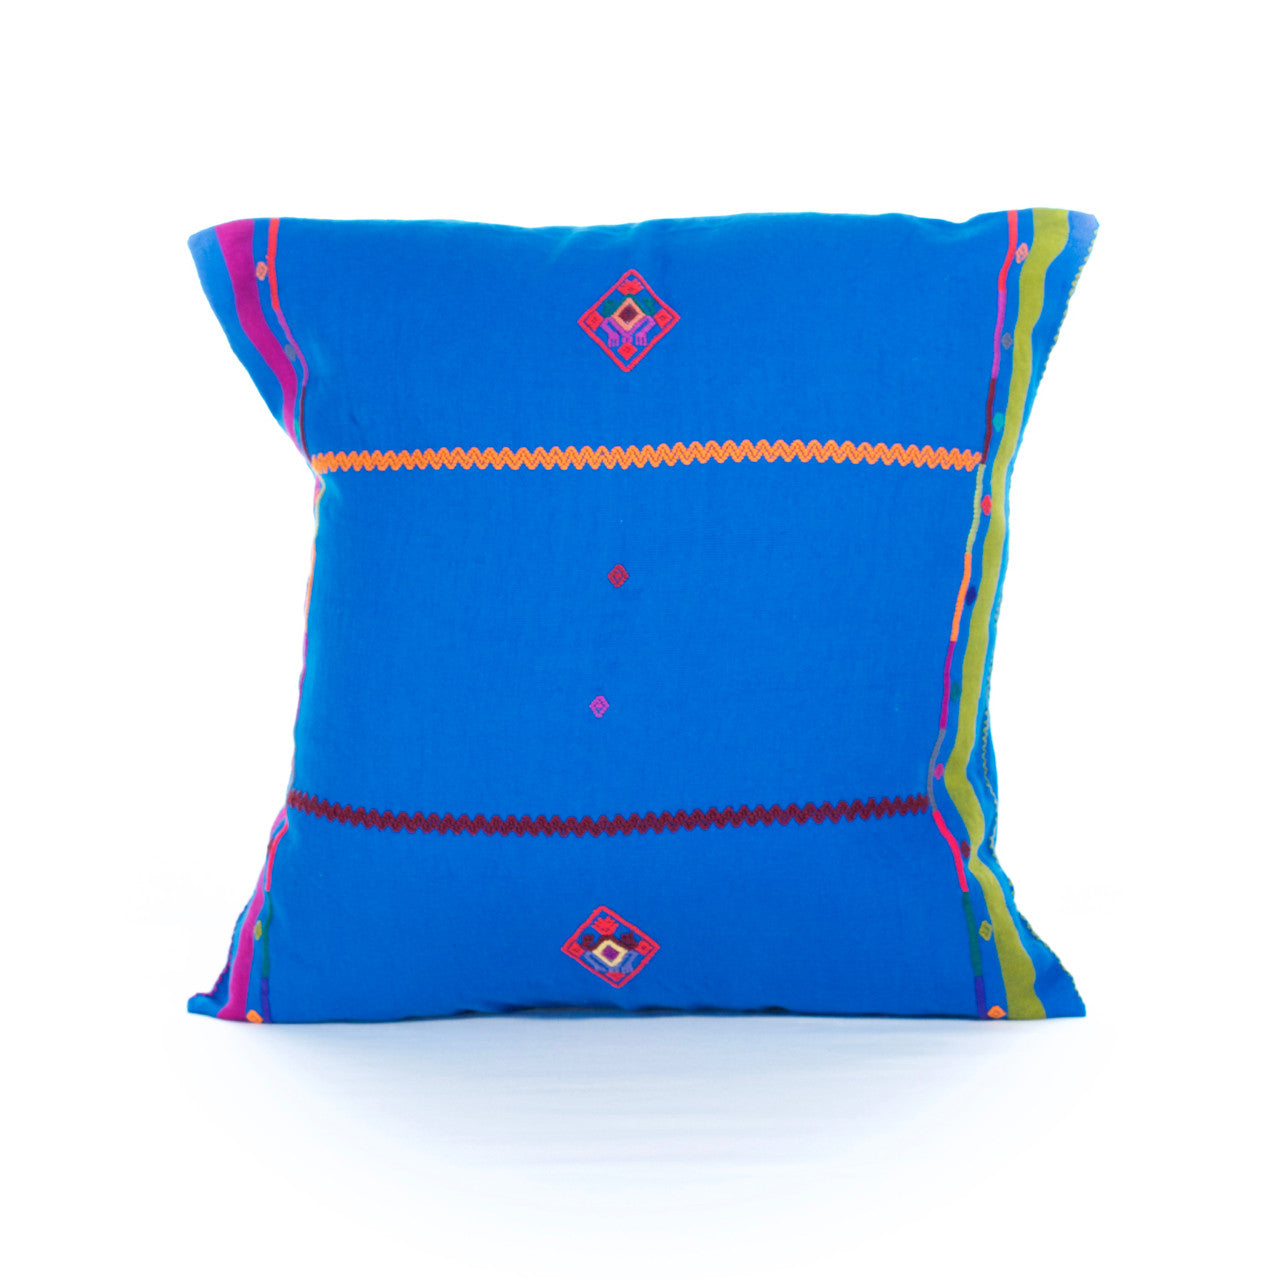 Sapo Cushion - Cielo Collective - Light Blue - 1